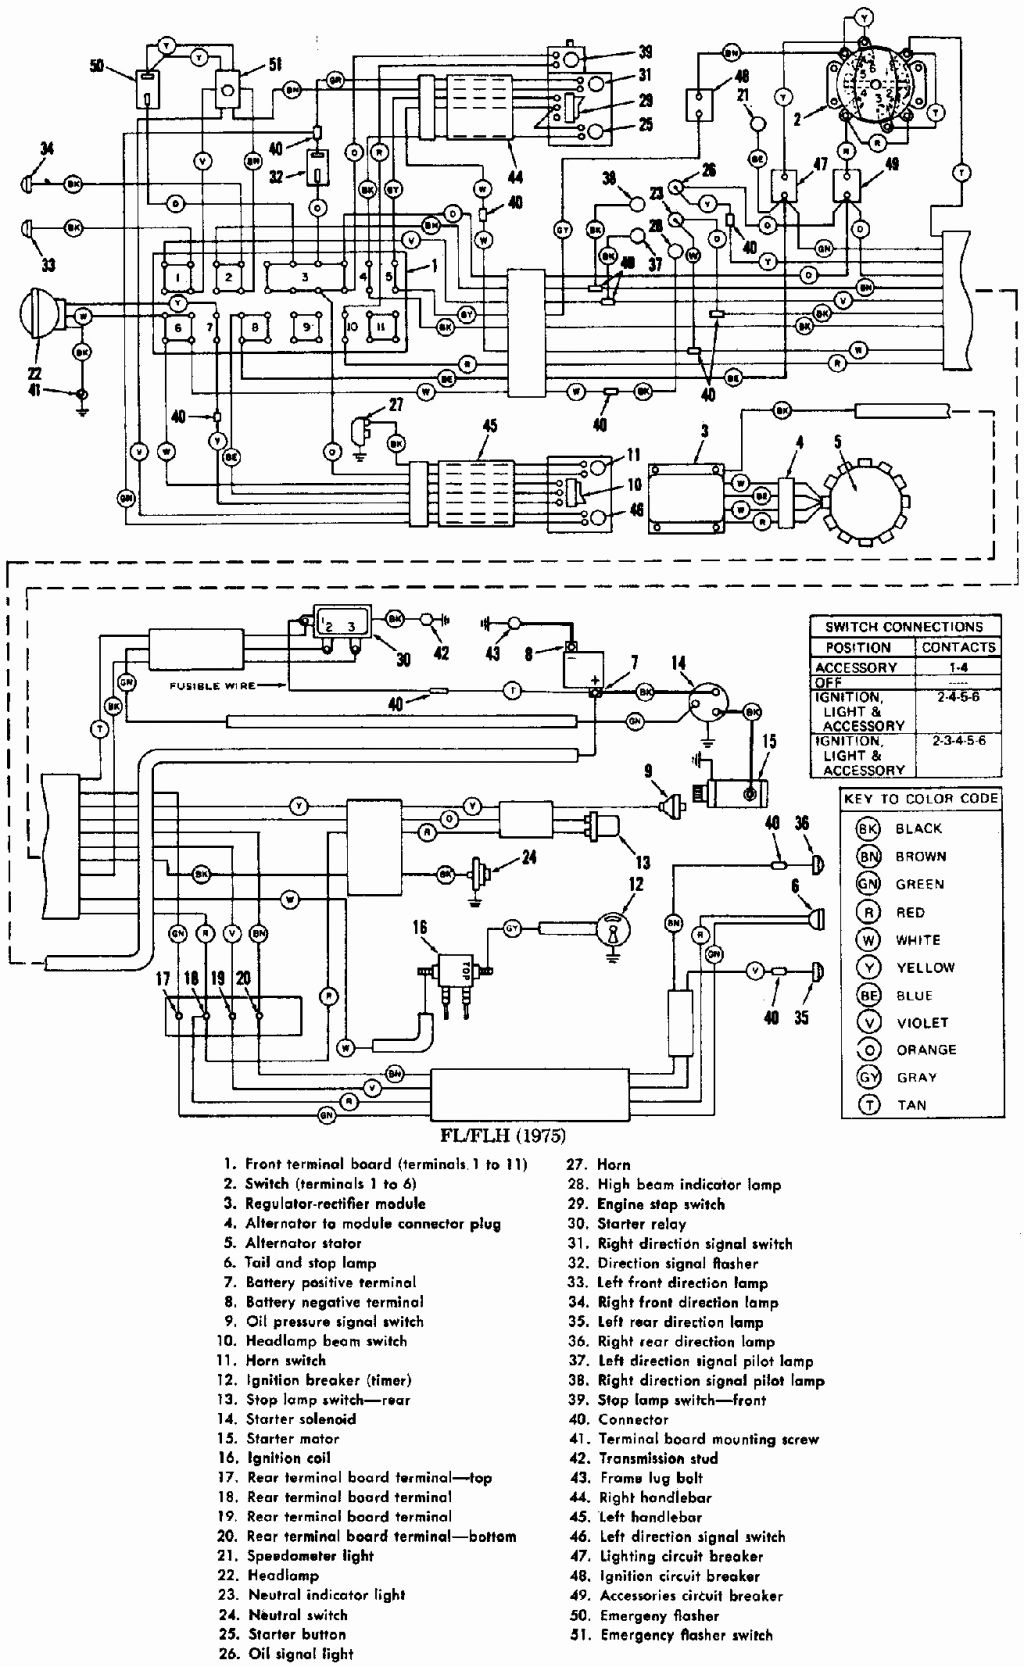 Cdi Ignition Module Wiring Diagram Ford | Wiring Diagram ...